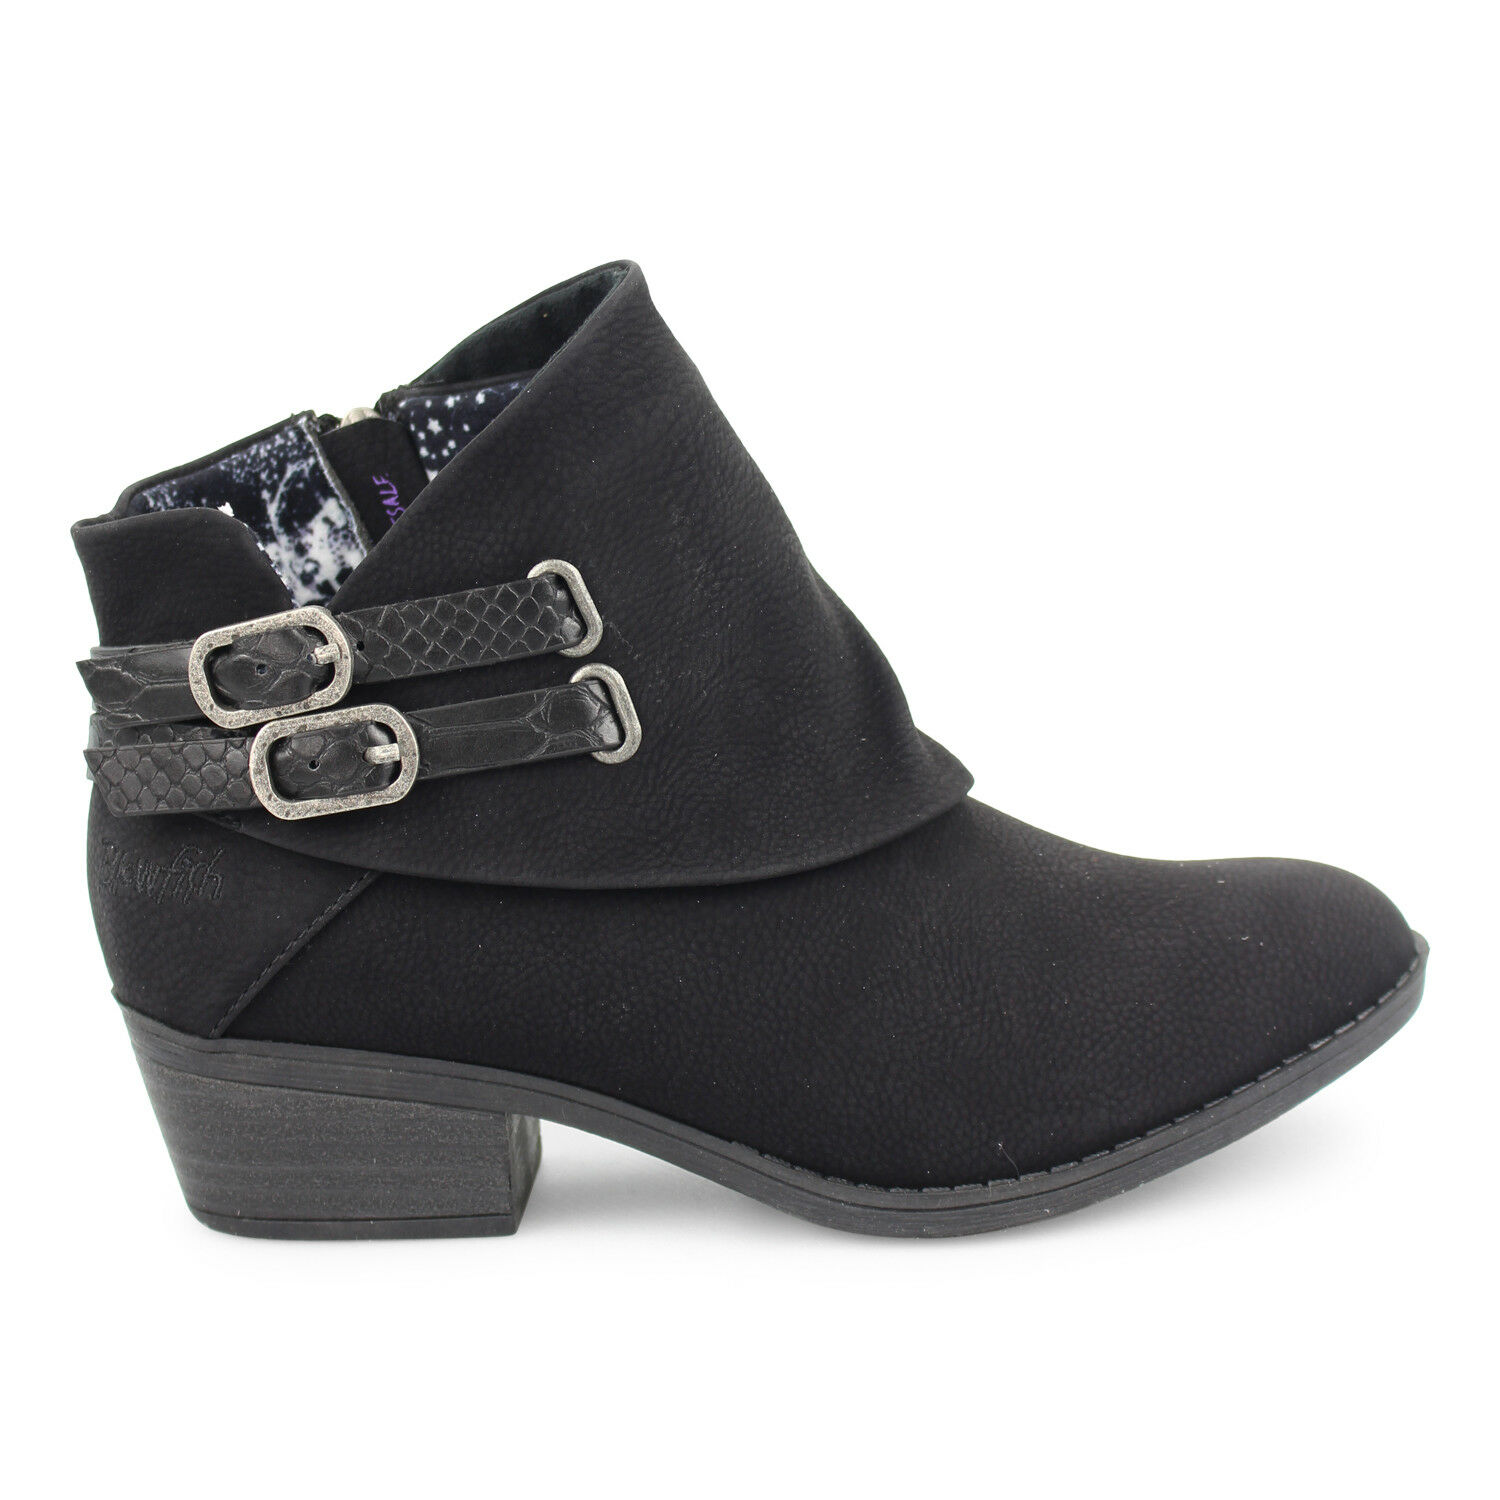 Blowfish Malibu Womens Womens Womens Sistee Ankle Boots Buckle Detail Zip Up Fashion shoes beddba